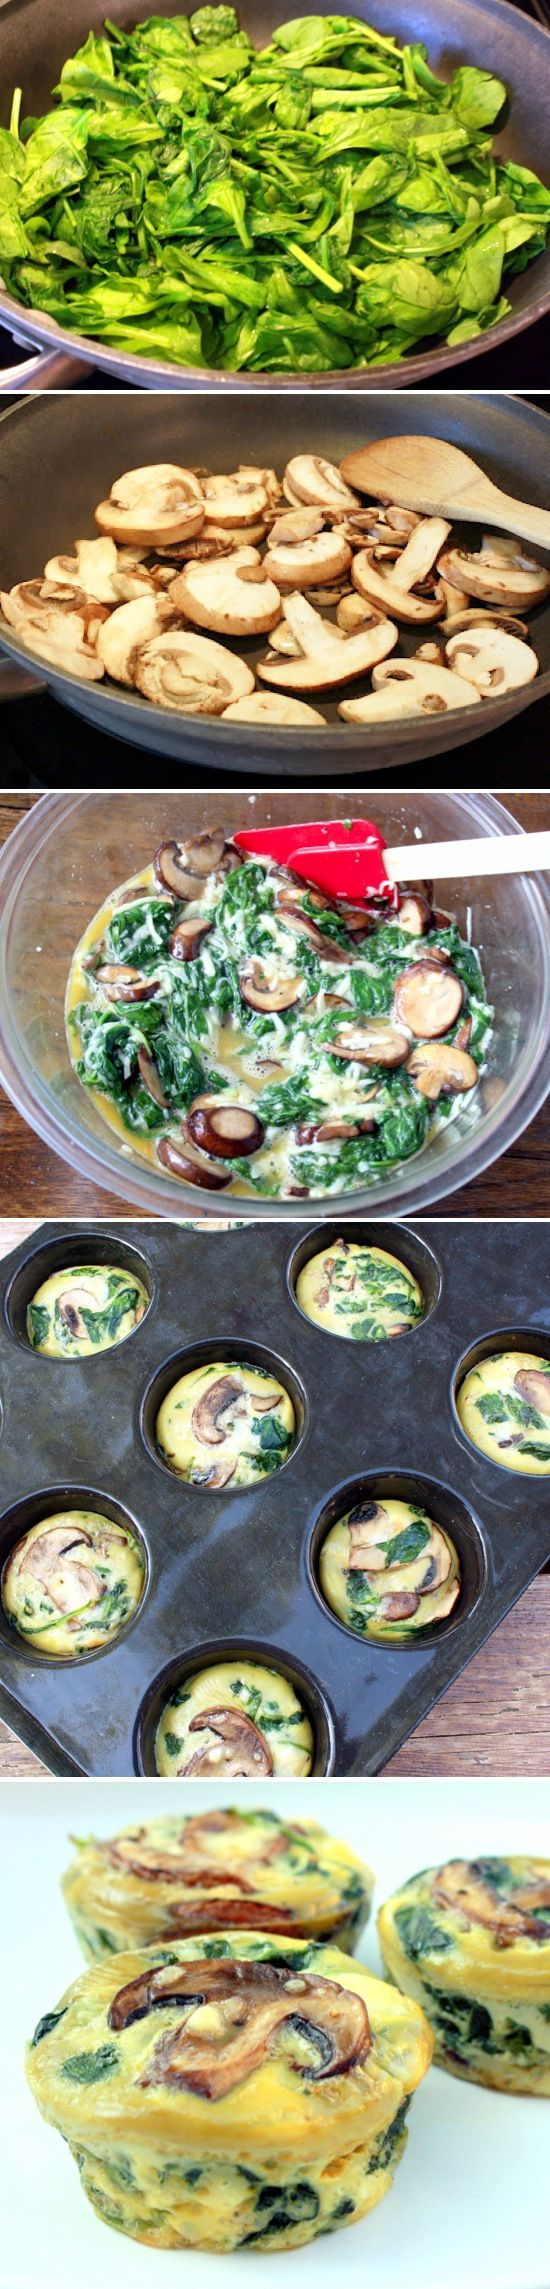 Spinach Quiche Cups: 10oz spinach, mushrooms, 4-5 eggs, 1 cup shredded cheese. 375 for 20-23 min. Breakfast